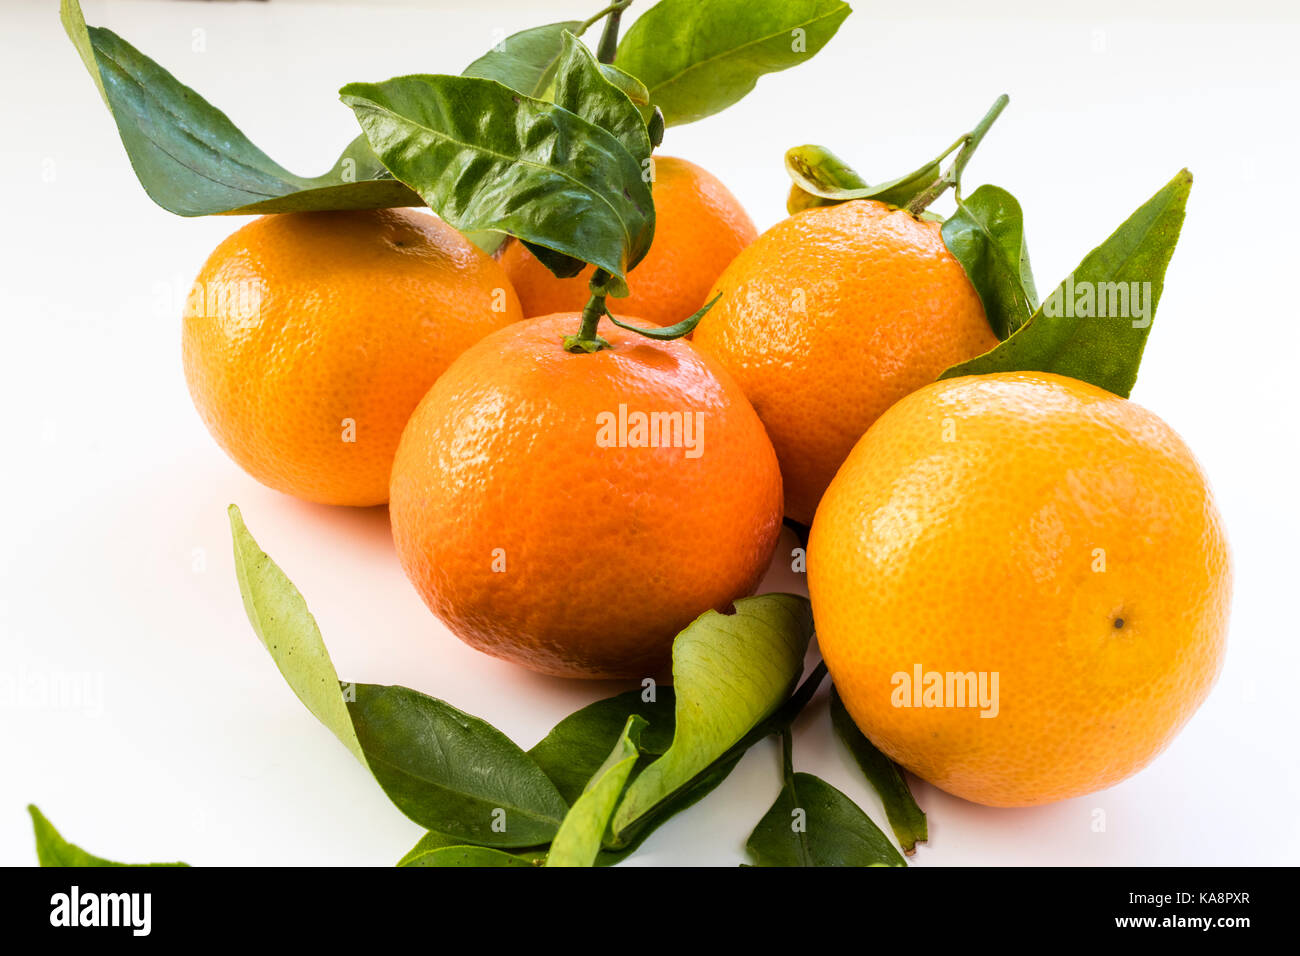 Fruit. Five Oranges attached to vine with green leaves on white background. - Stock Image